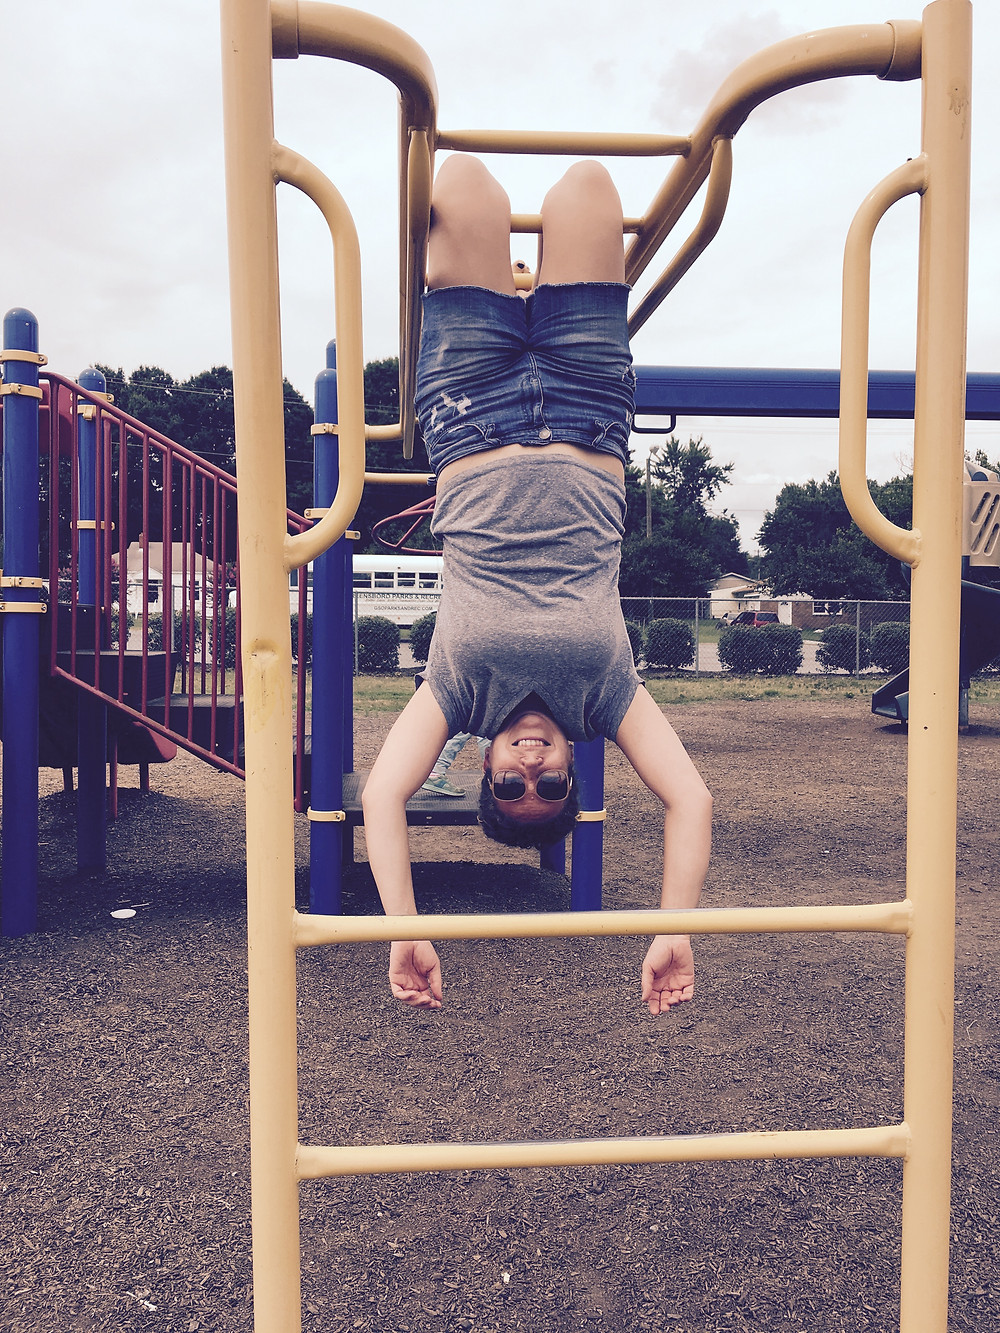 Woman hanging upside down on outdoor jungle gym